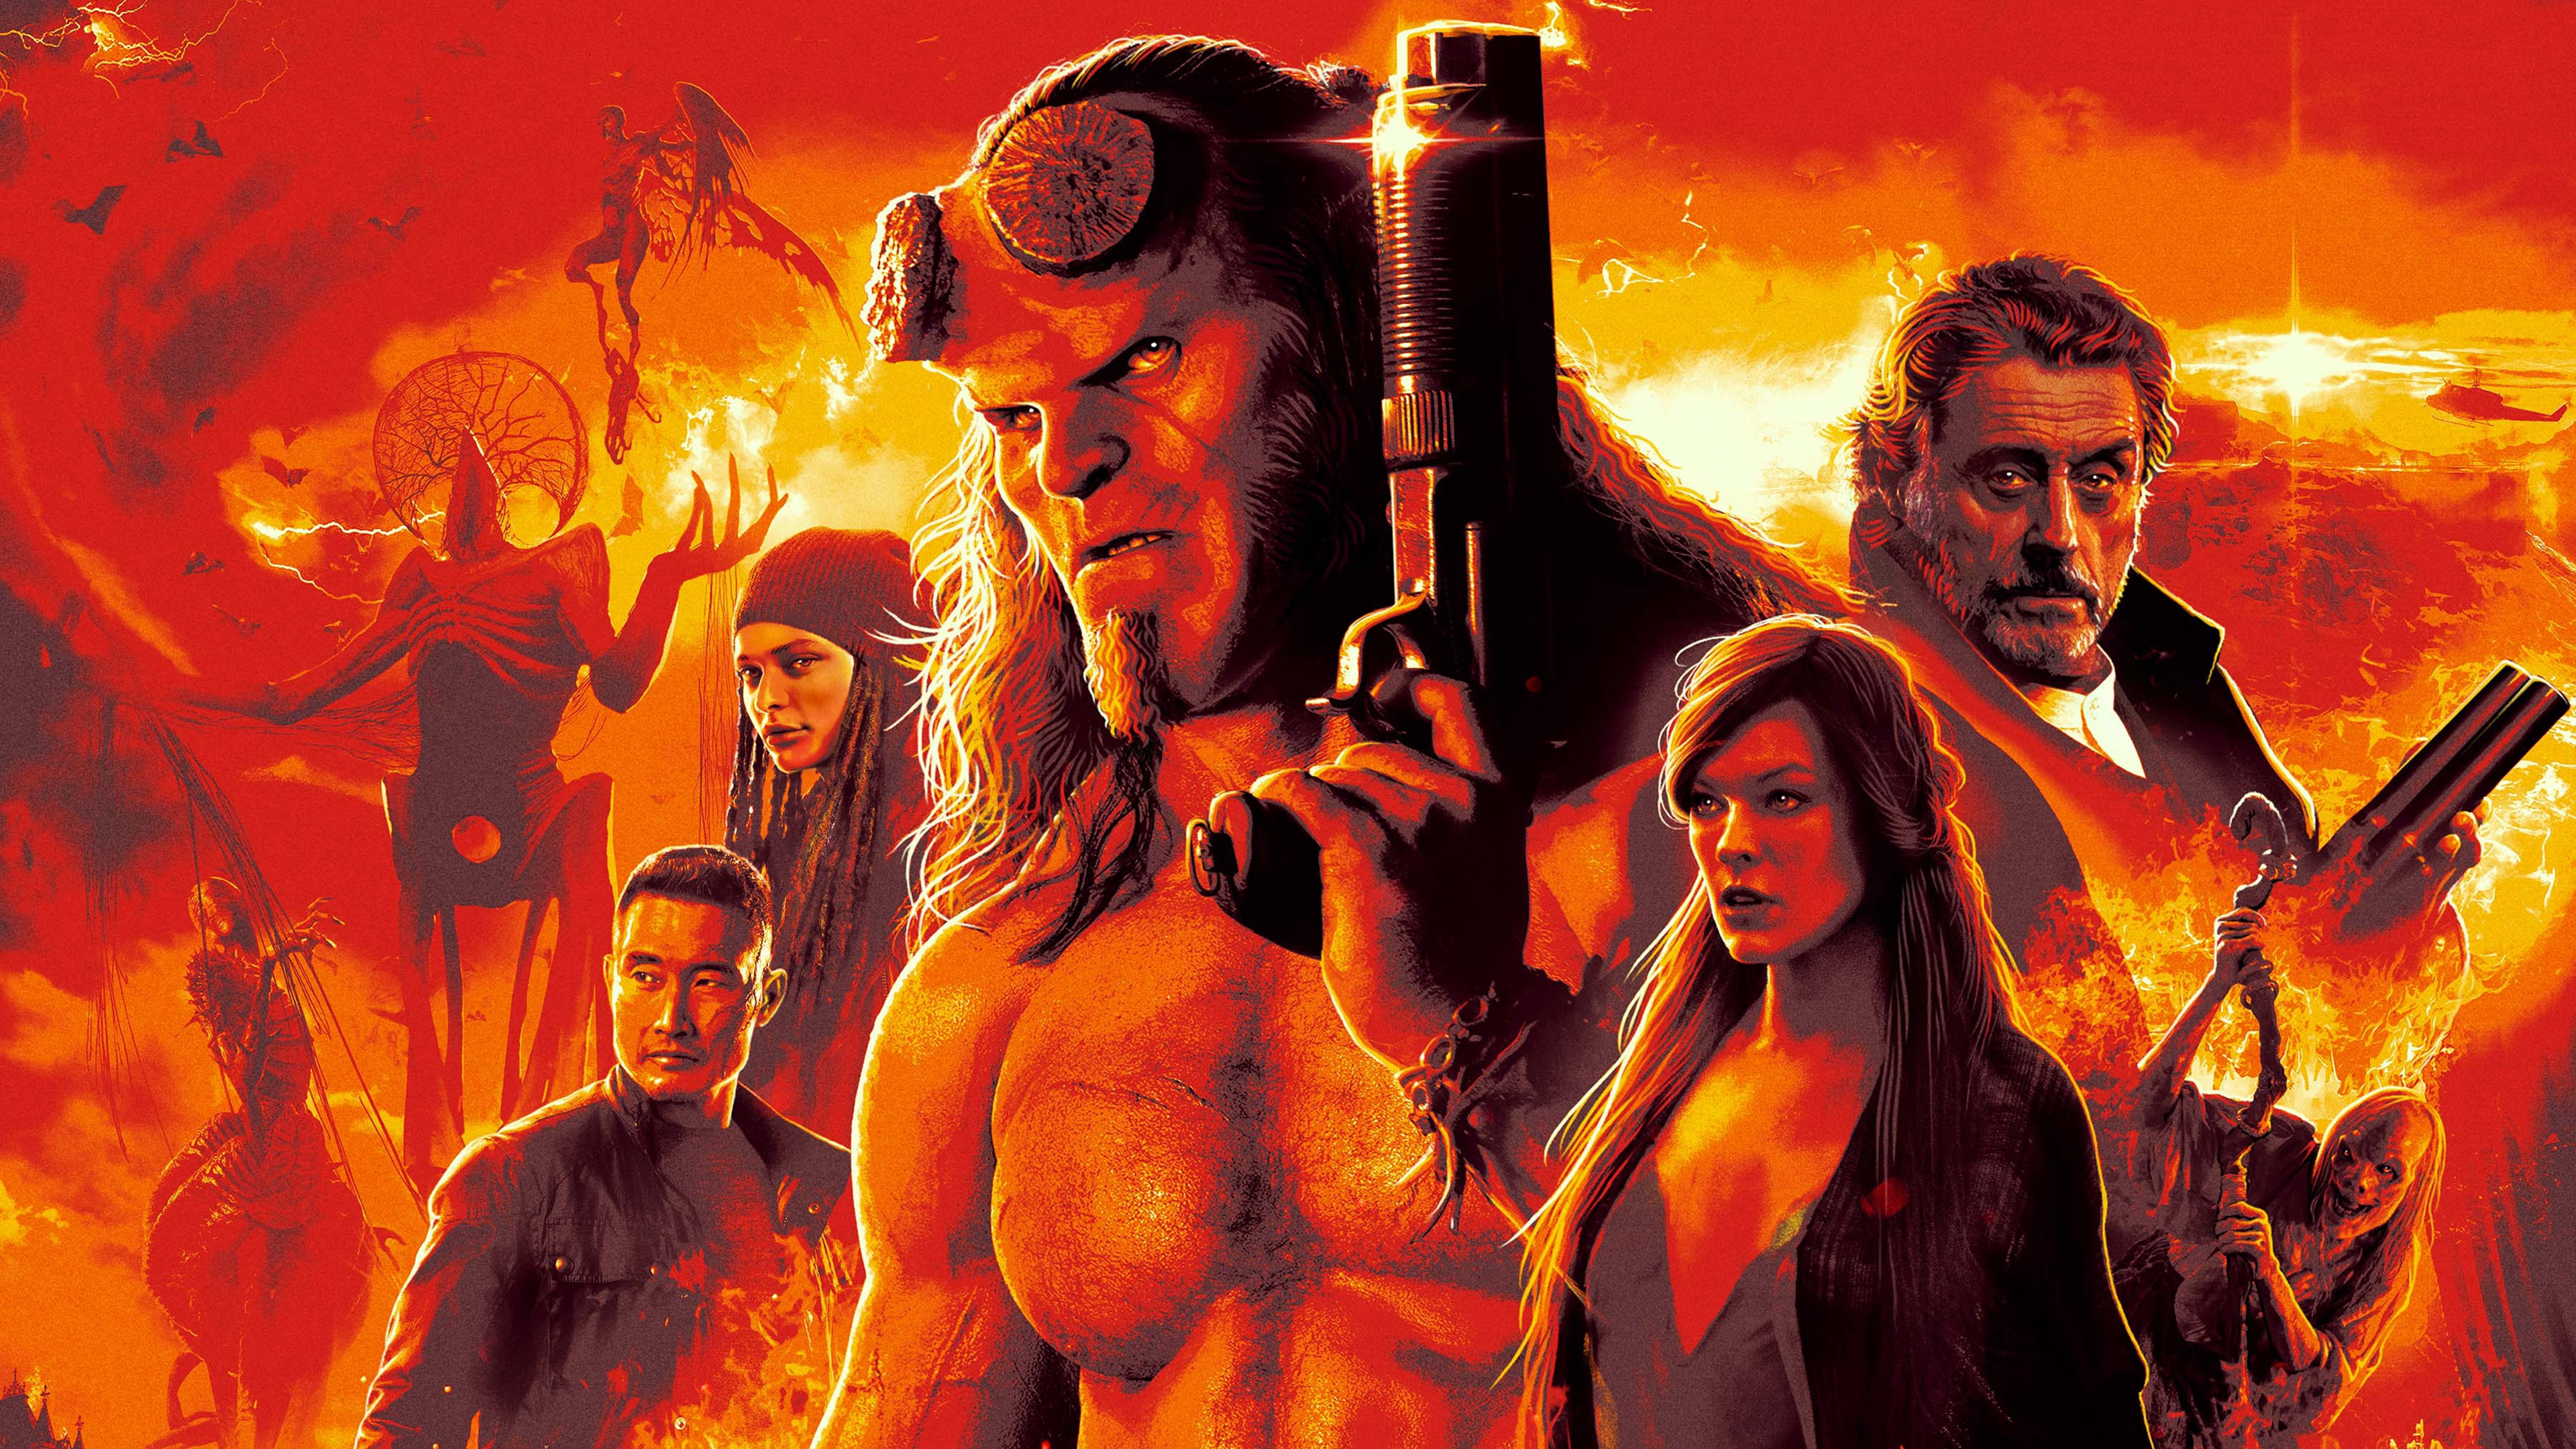 Movie Poster 2019: Hellboy (2019) Movie Poster 4k Ultra HD Wallpaper